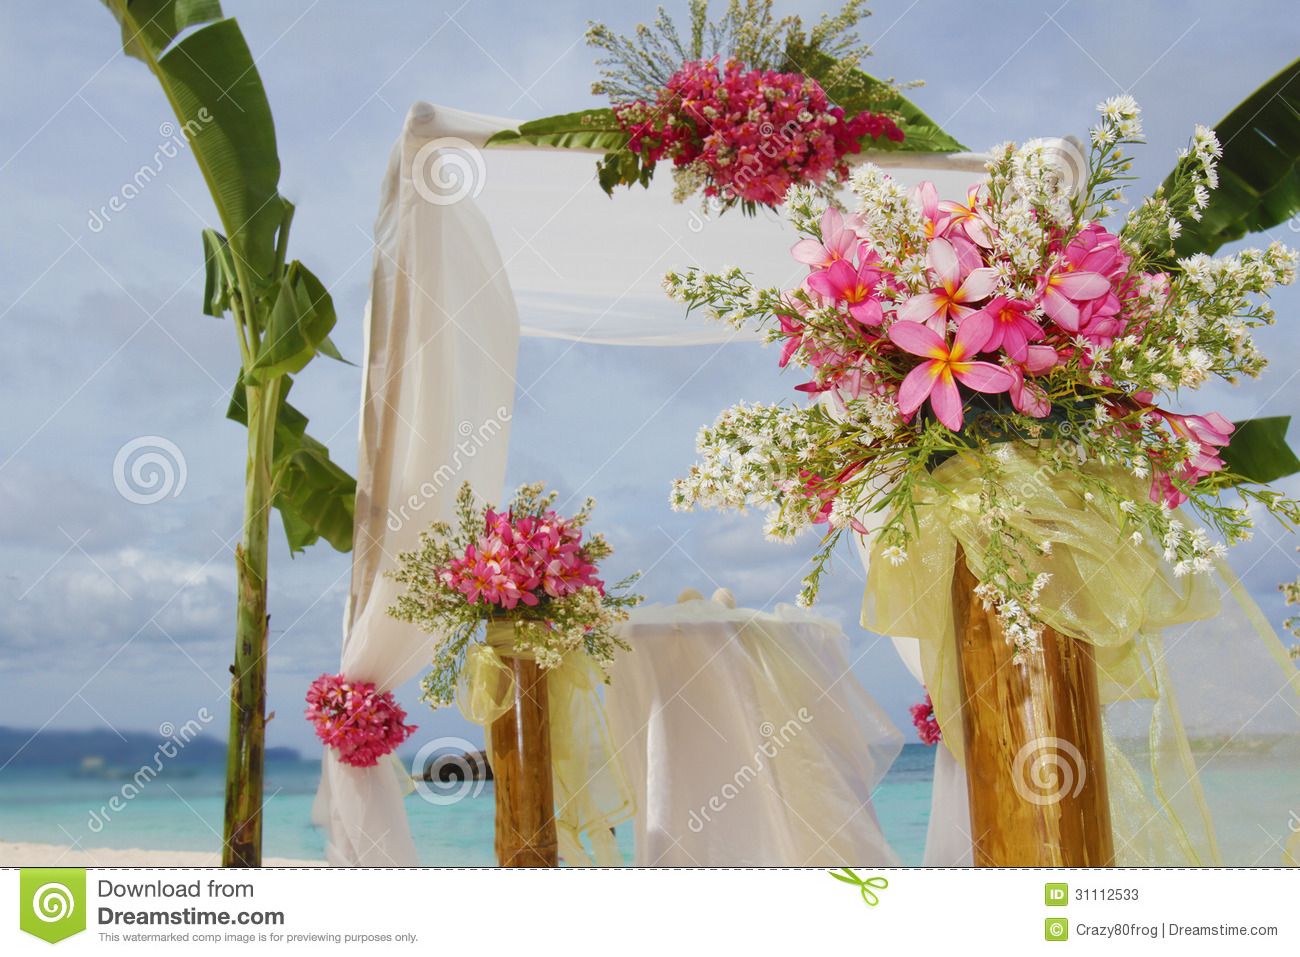 Wedding Arch Decorations Wedding Arch And Set Up Stock Photos Image 31112533